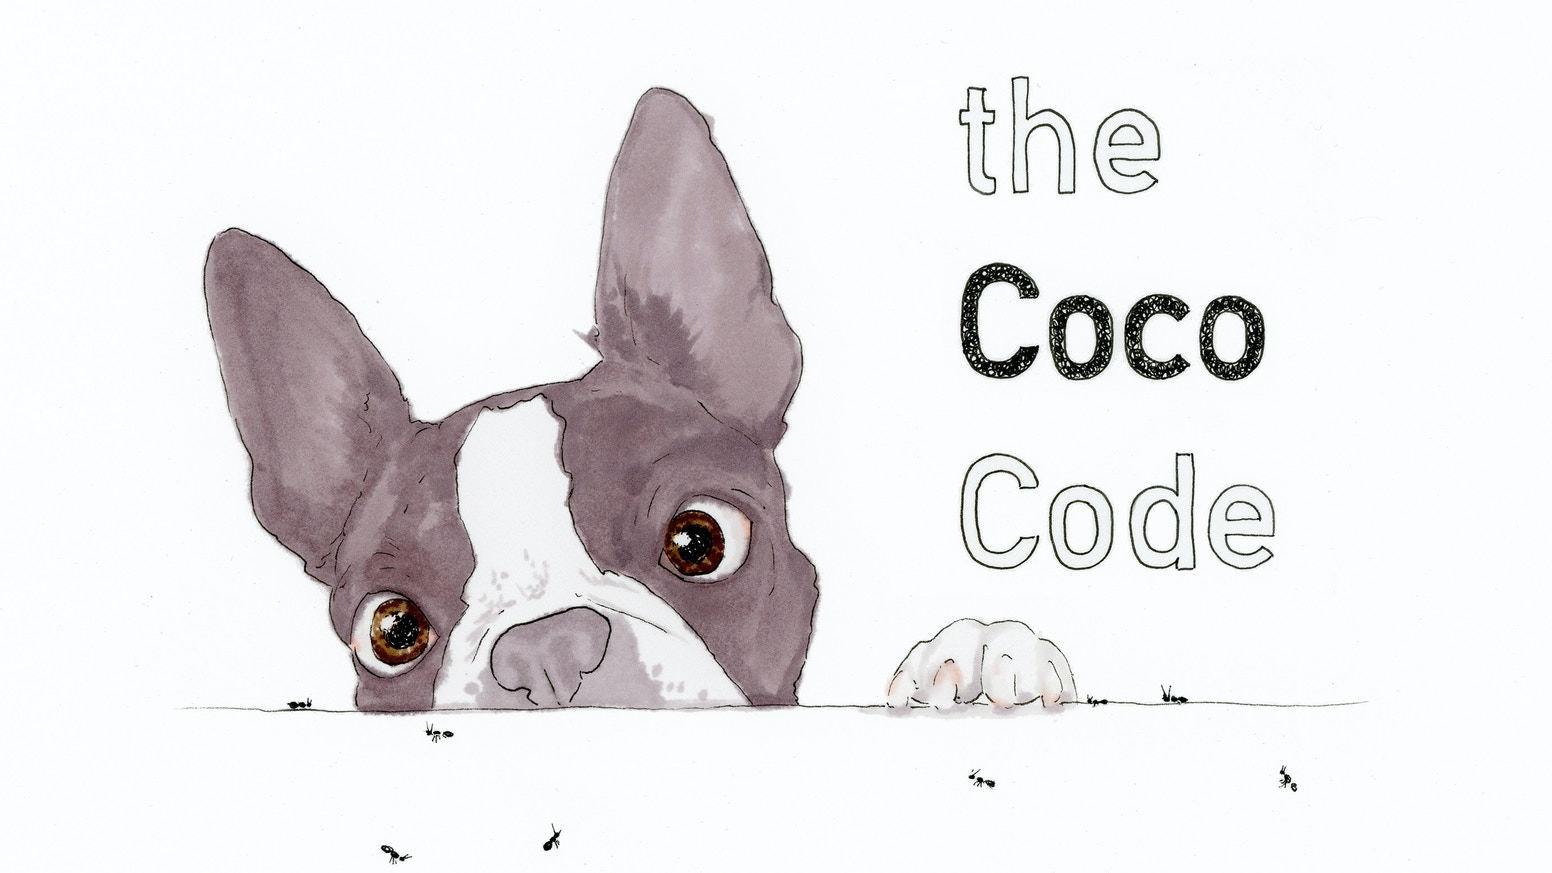 A sweetly illustrated book (for all ages) teaching to live and love through your actions.